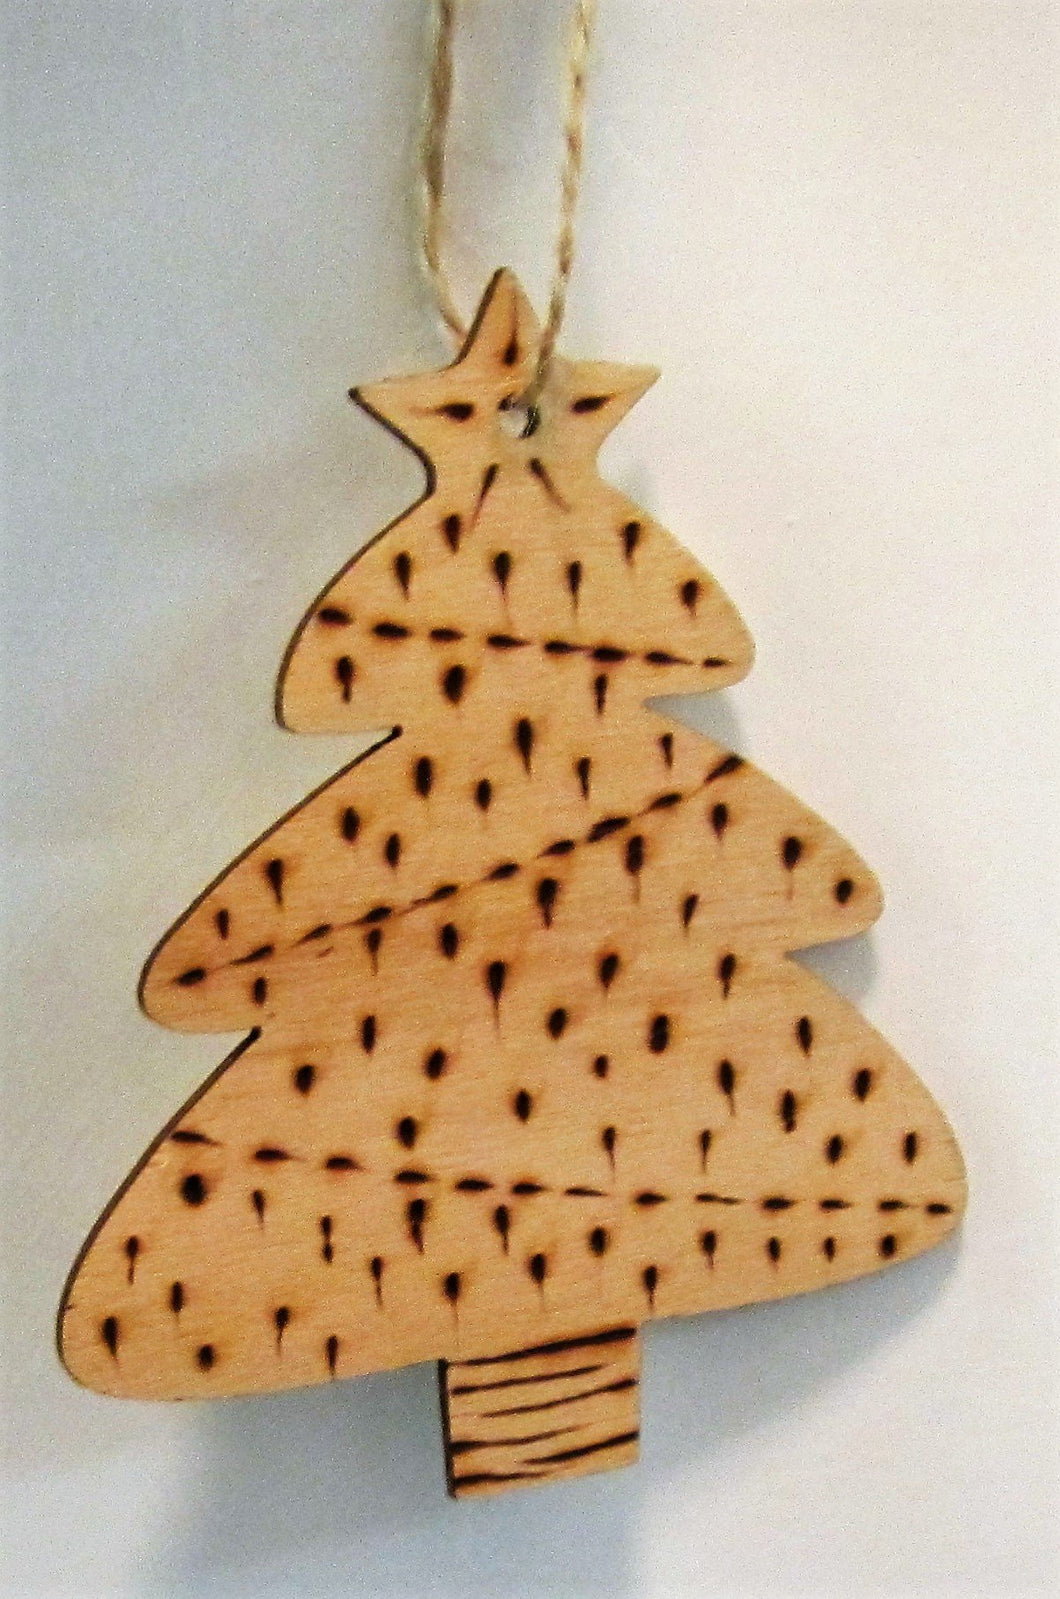 Beautiful handcrafted wooden tree decoration